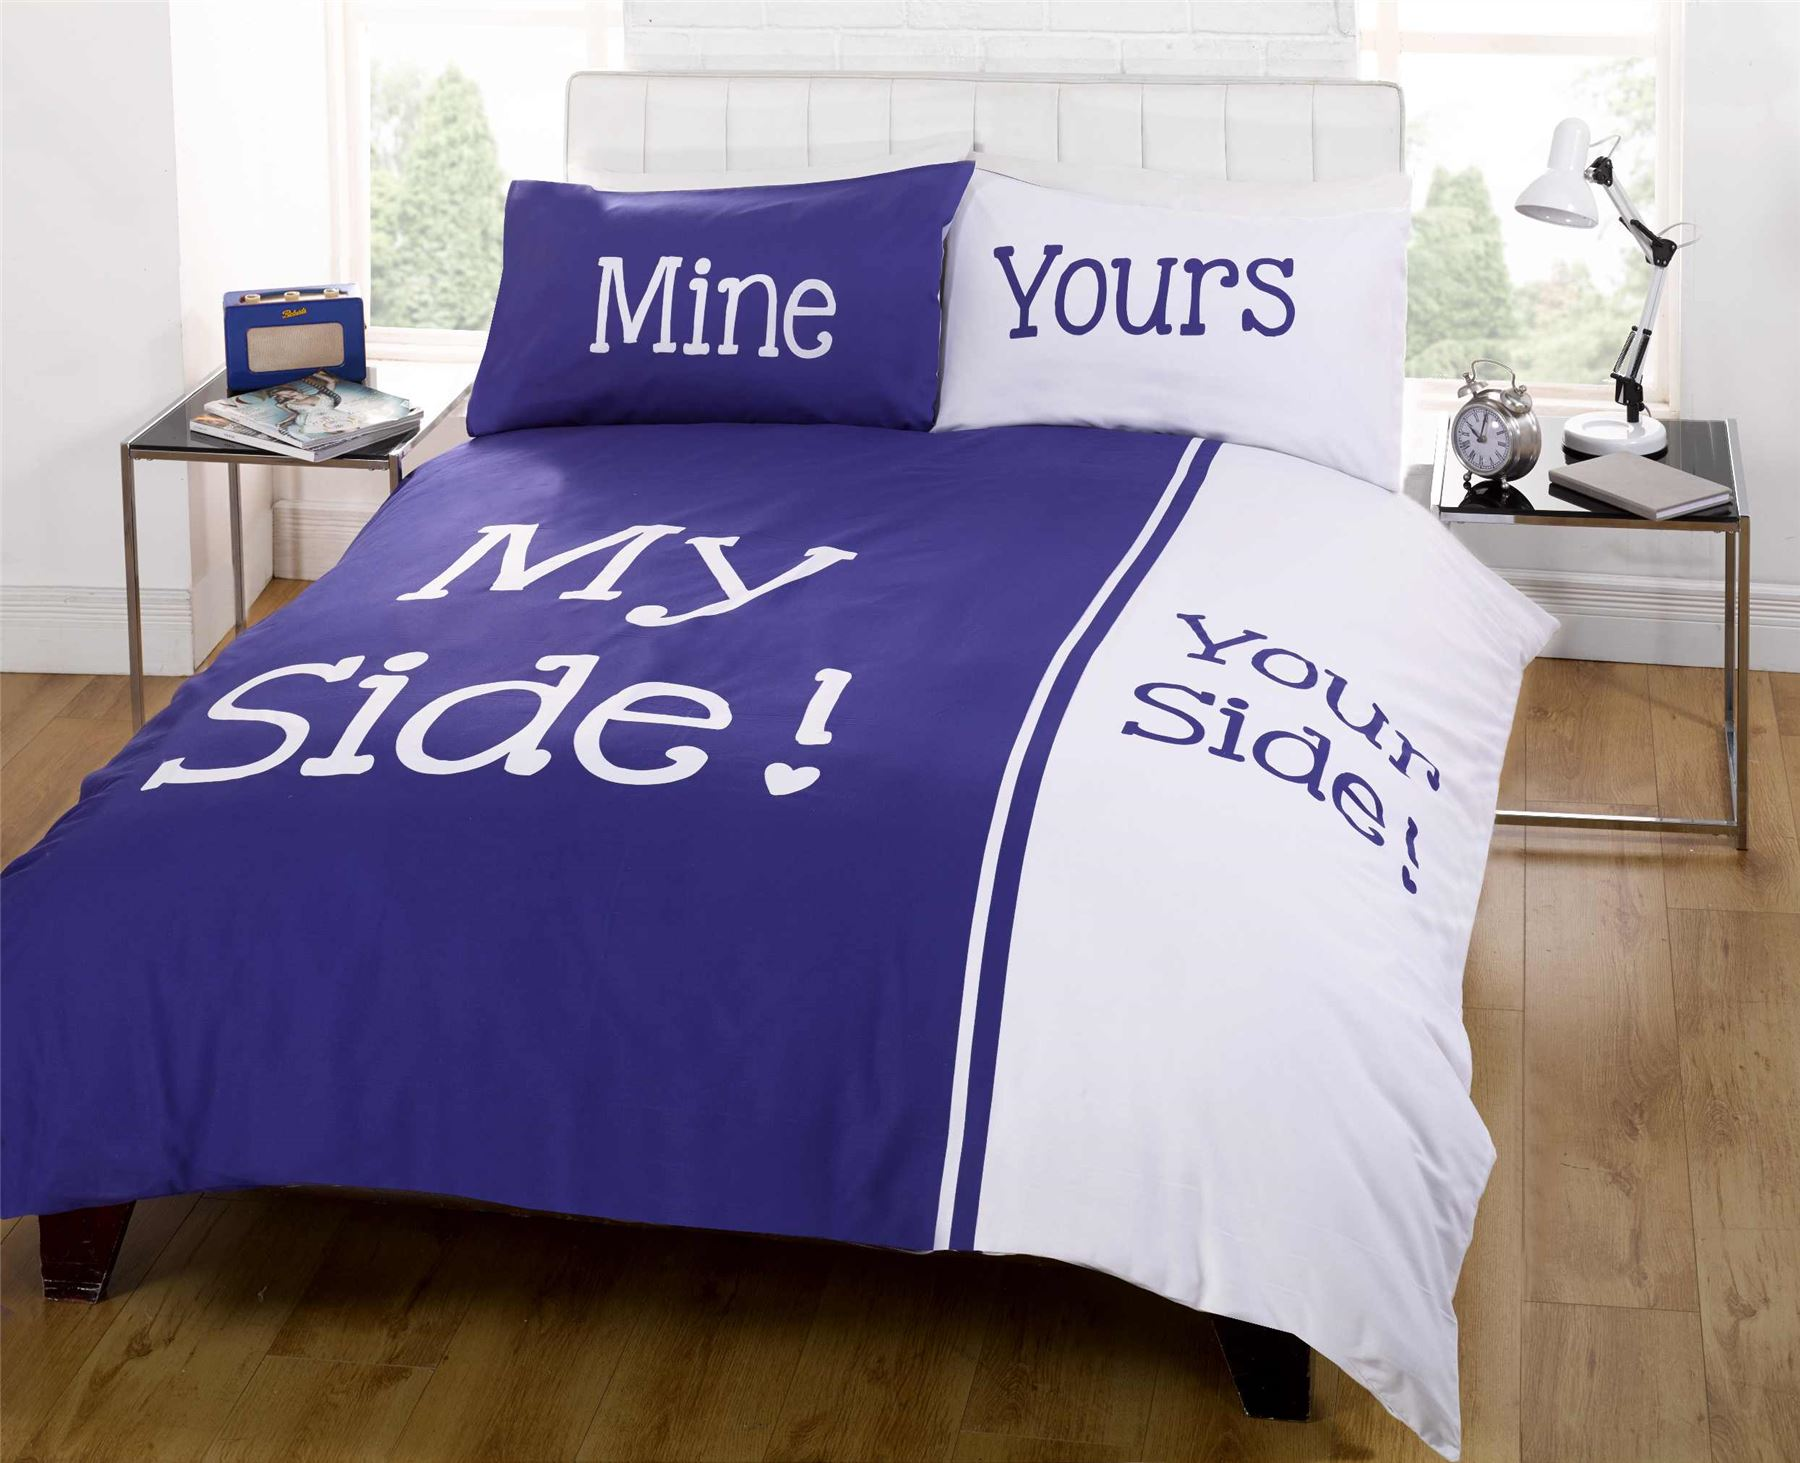 Rapport Panel Print Navy Blue My Side Your Side Couple